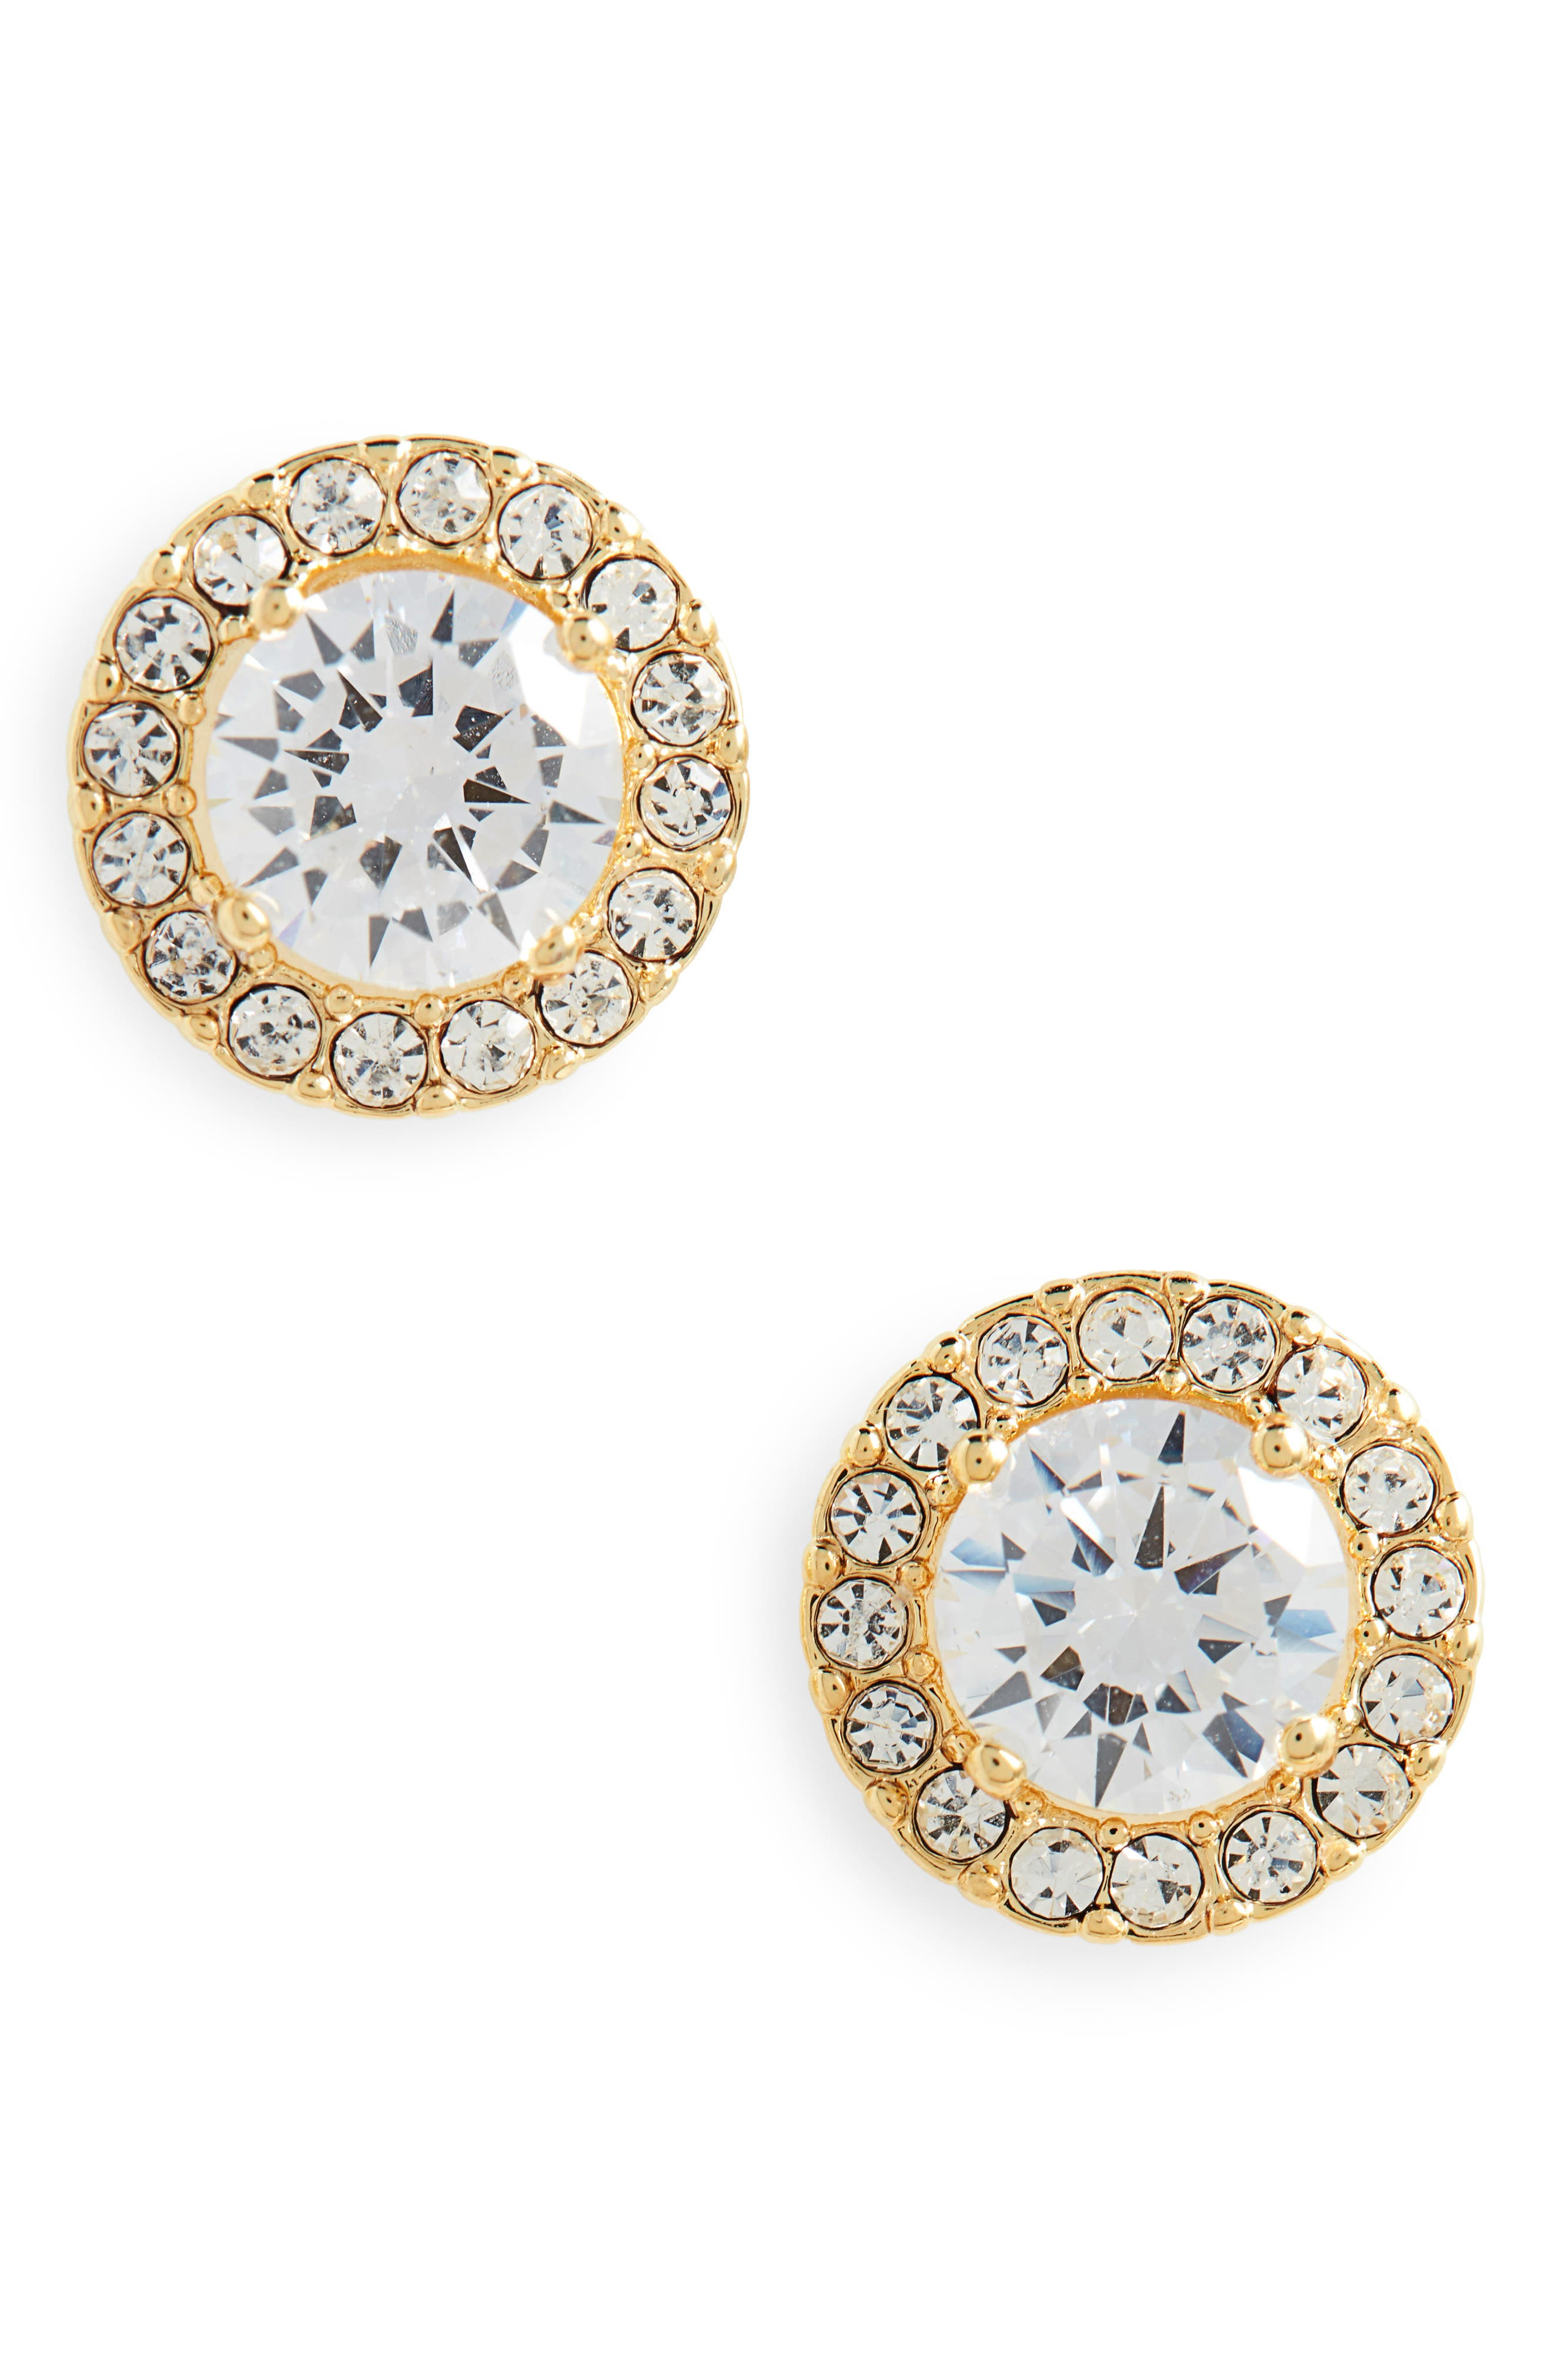 NORDSTROM, Halo Cubic Zirconia Stud Earrings, Main thumbnail 1, color, CLEAR- GOLD